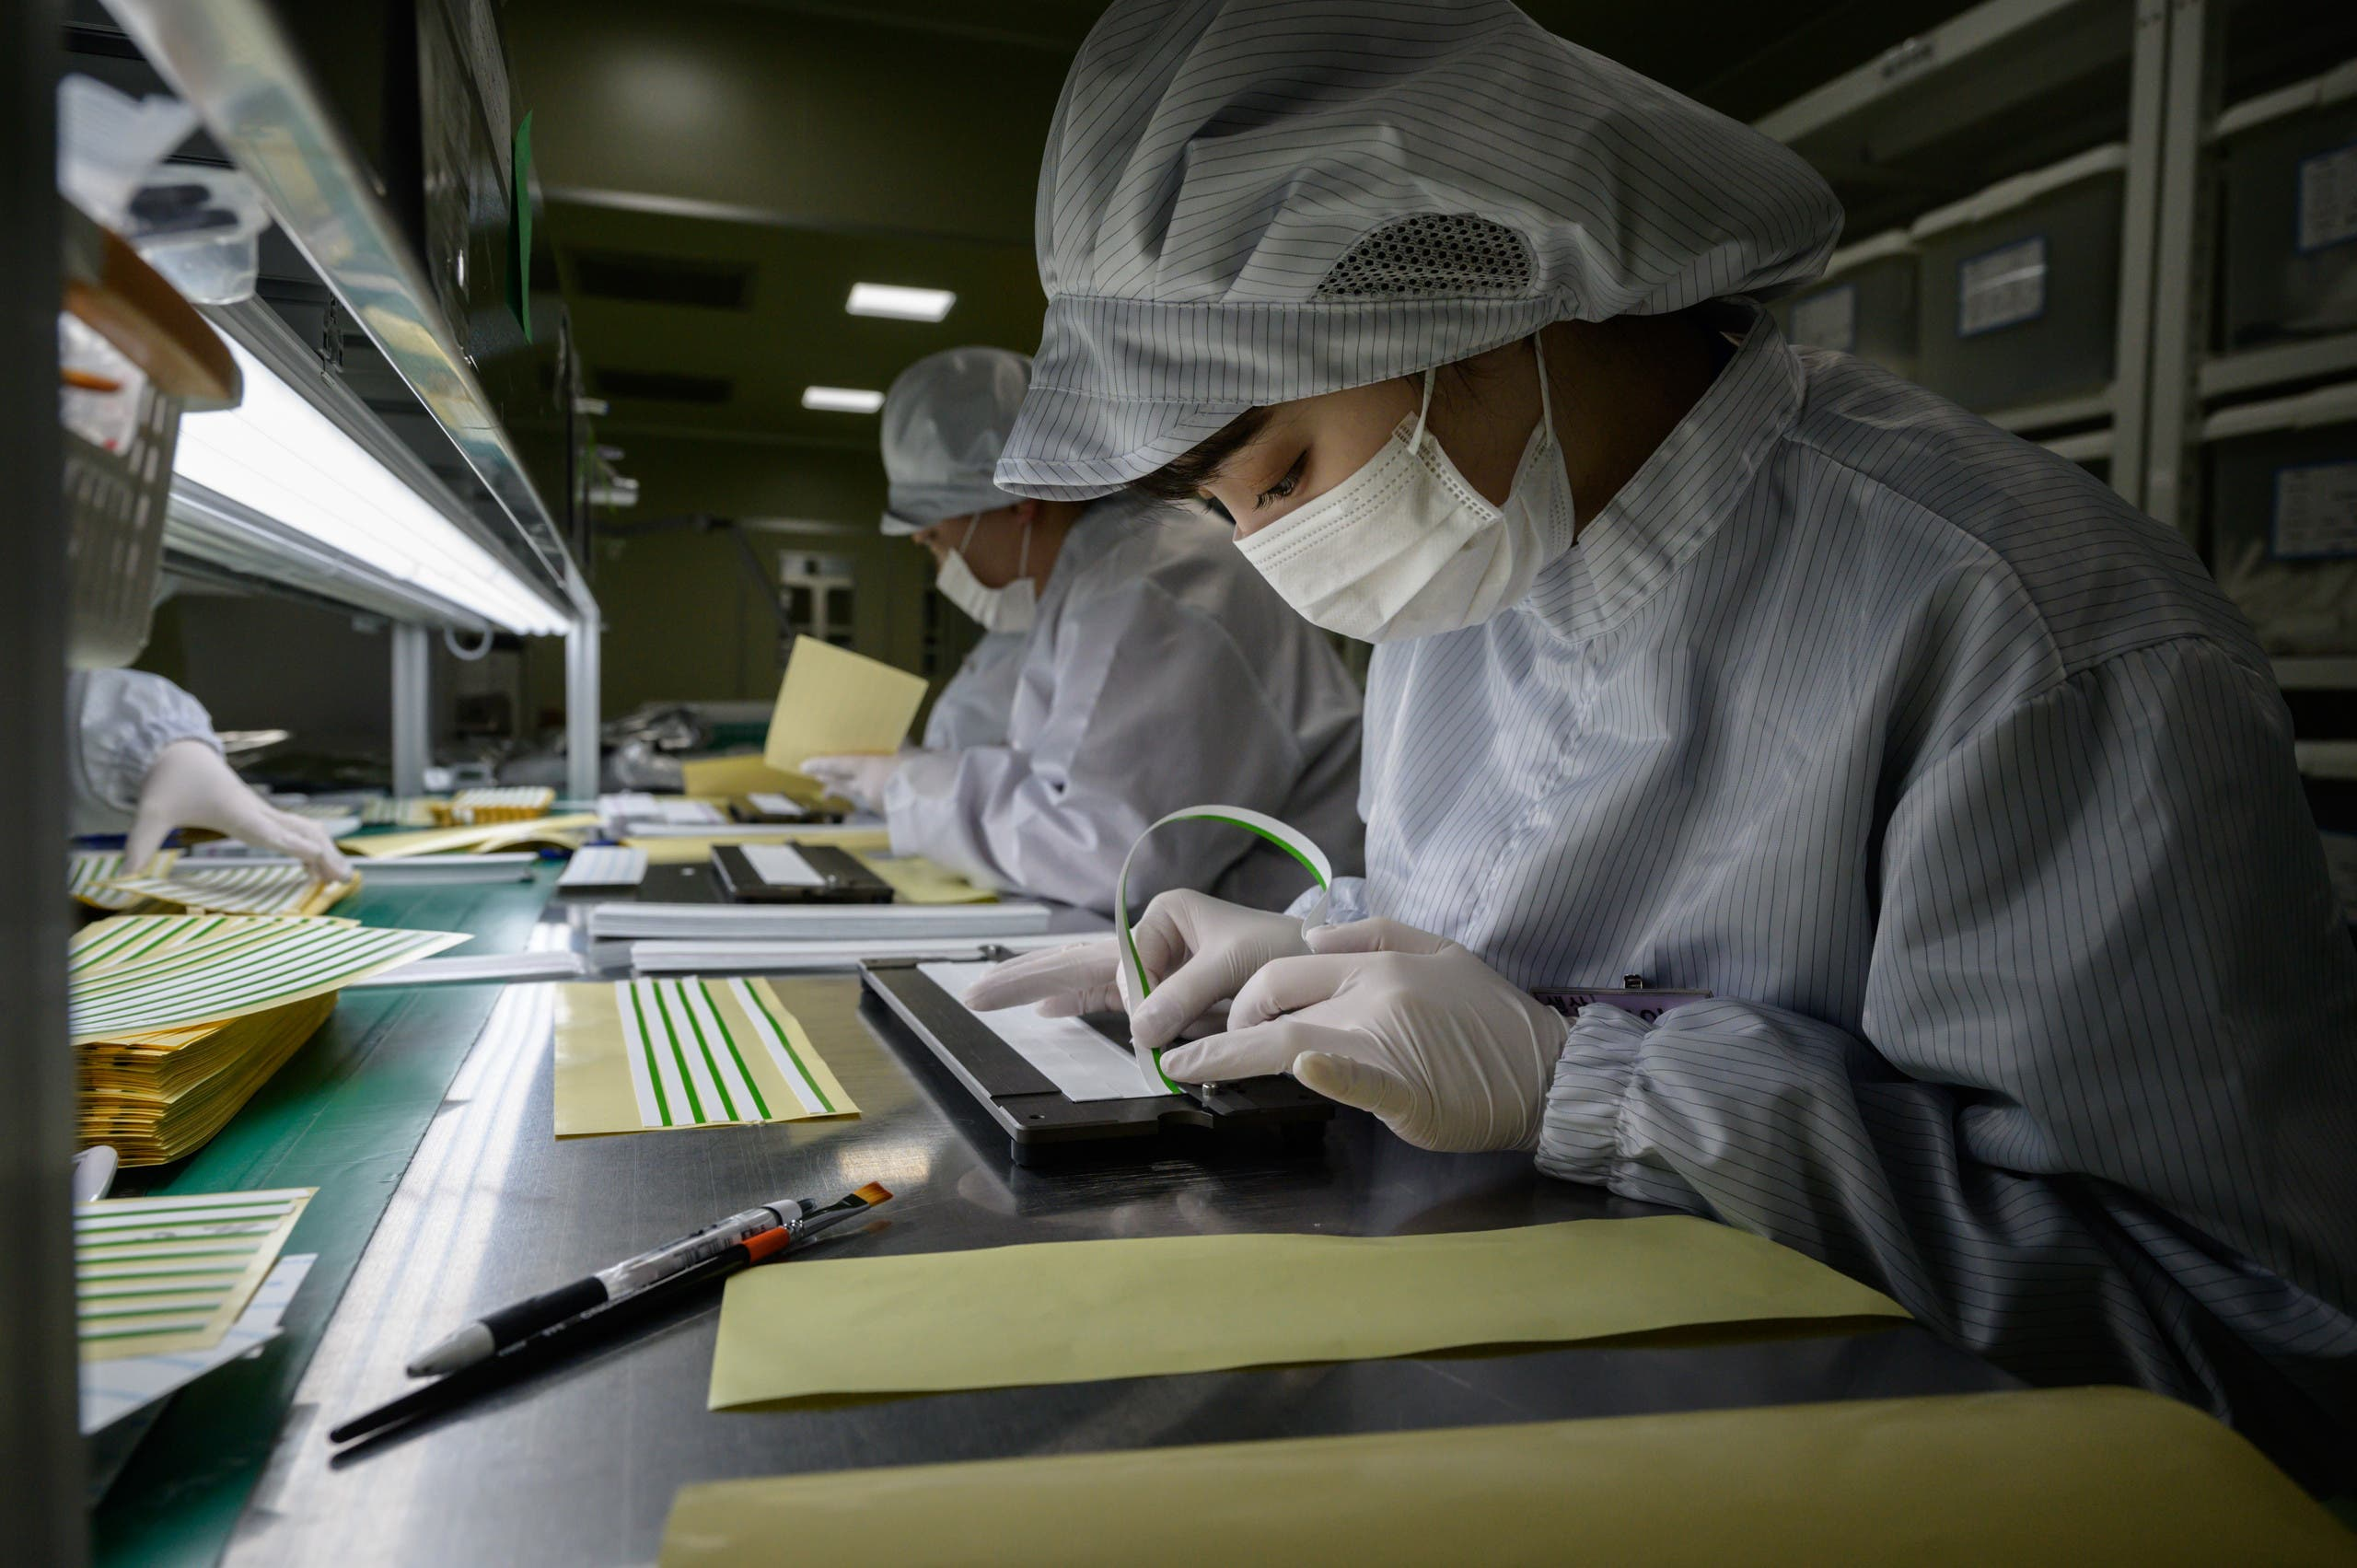 Staff members prepare diagnostic components to be used in COVID-19 novel coronavirus testing kits on a production line at the SD Biosensor bio-diagnostic company near Cheongju, south of Seoul on March 27, 2020. (AFP)